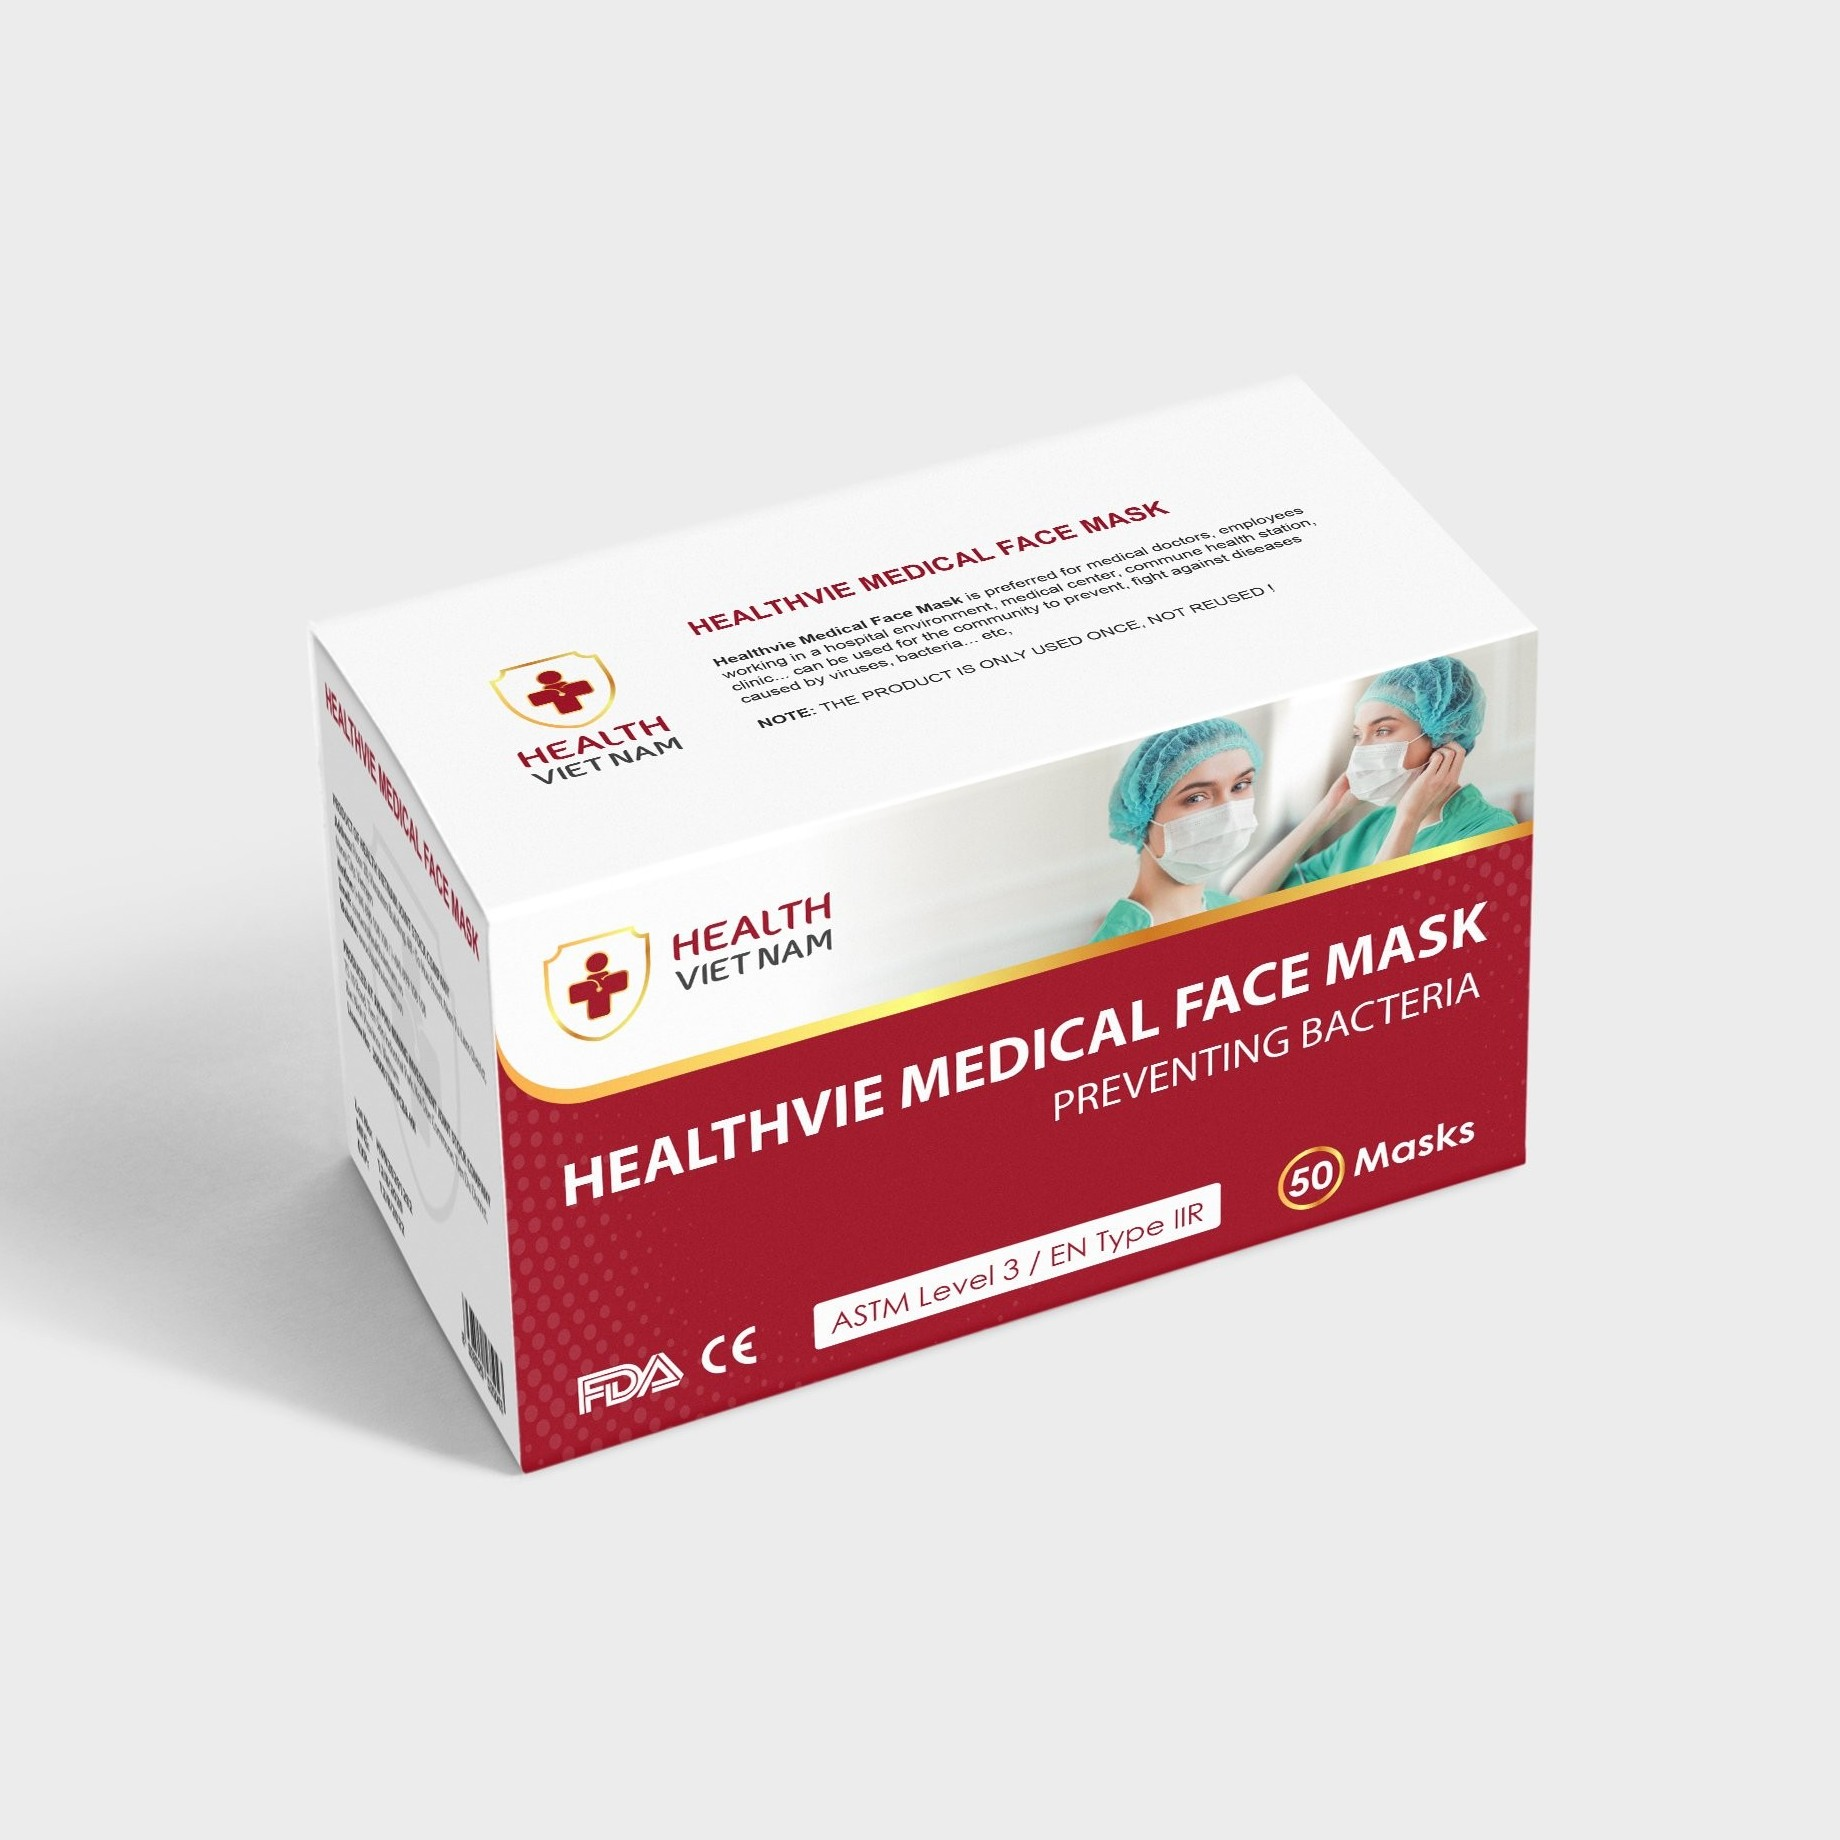 Healthvie Medical Face Mask Preventing Bacteria Level 3 - Export